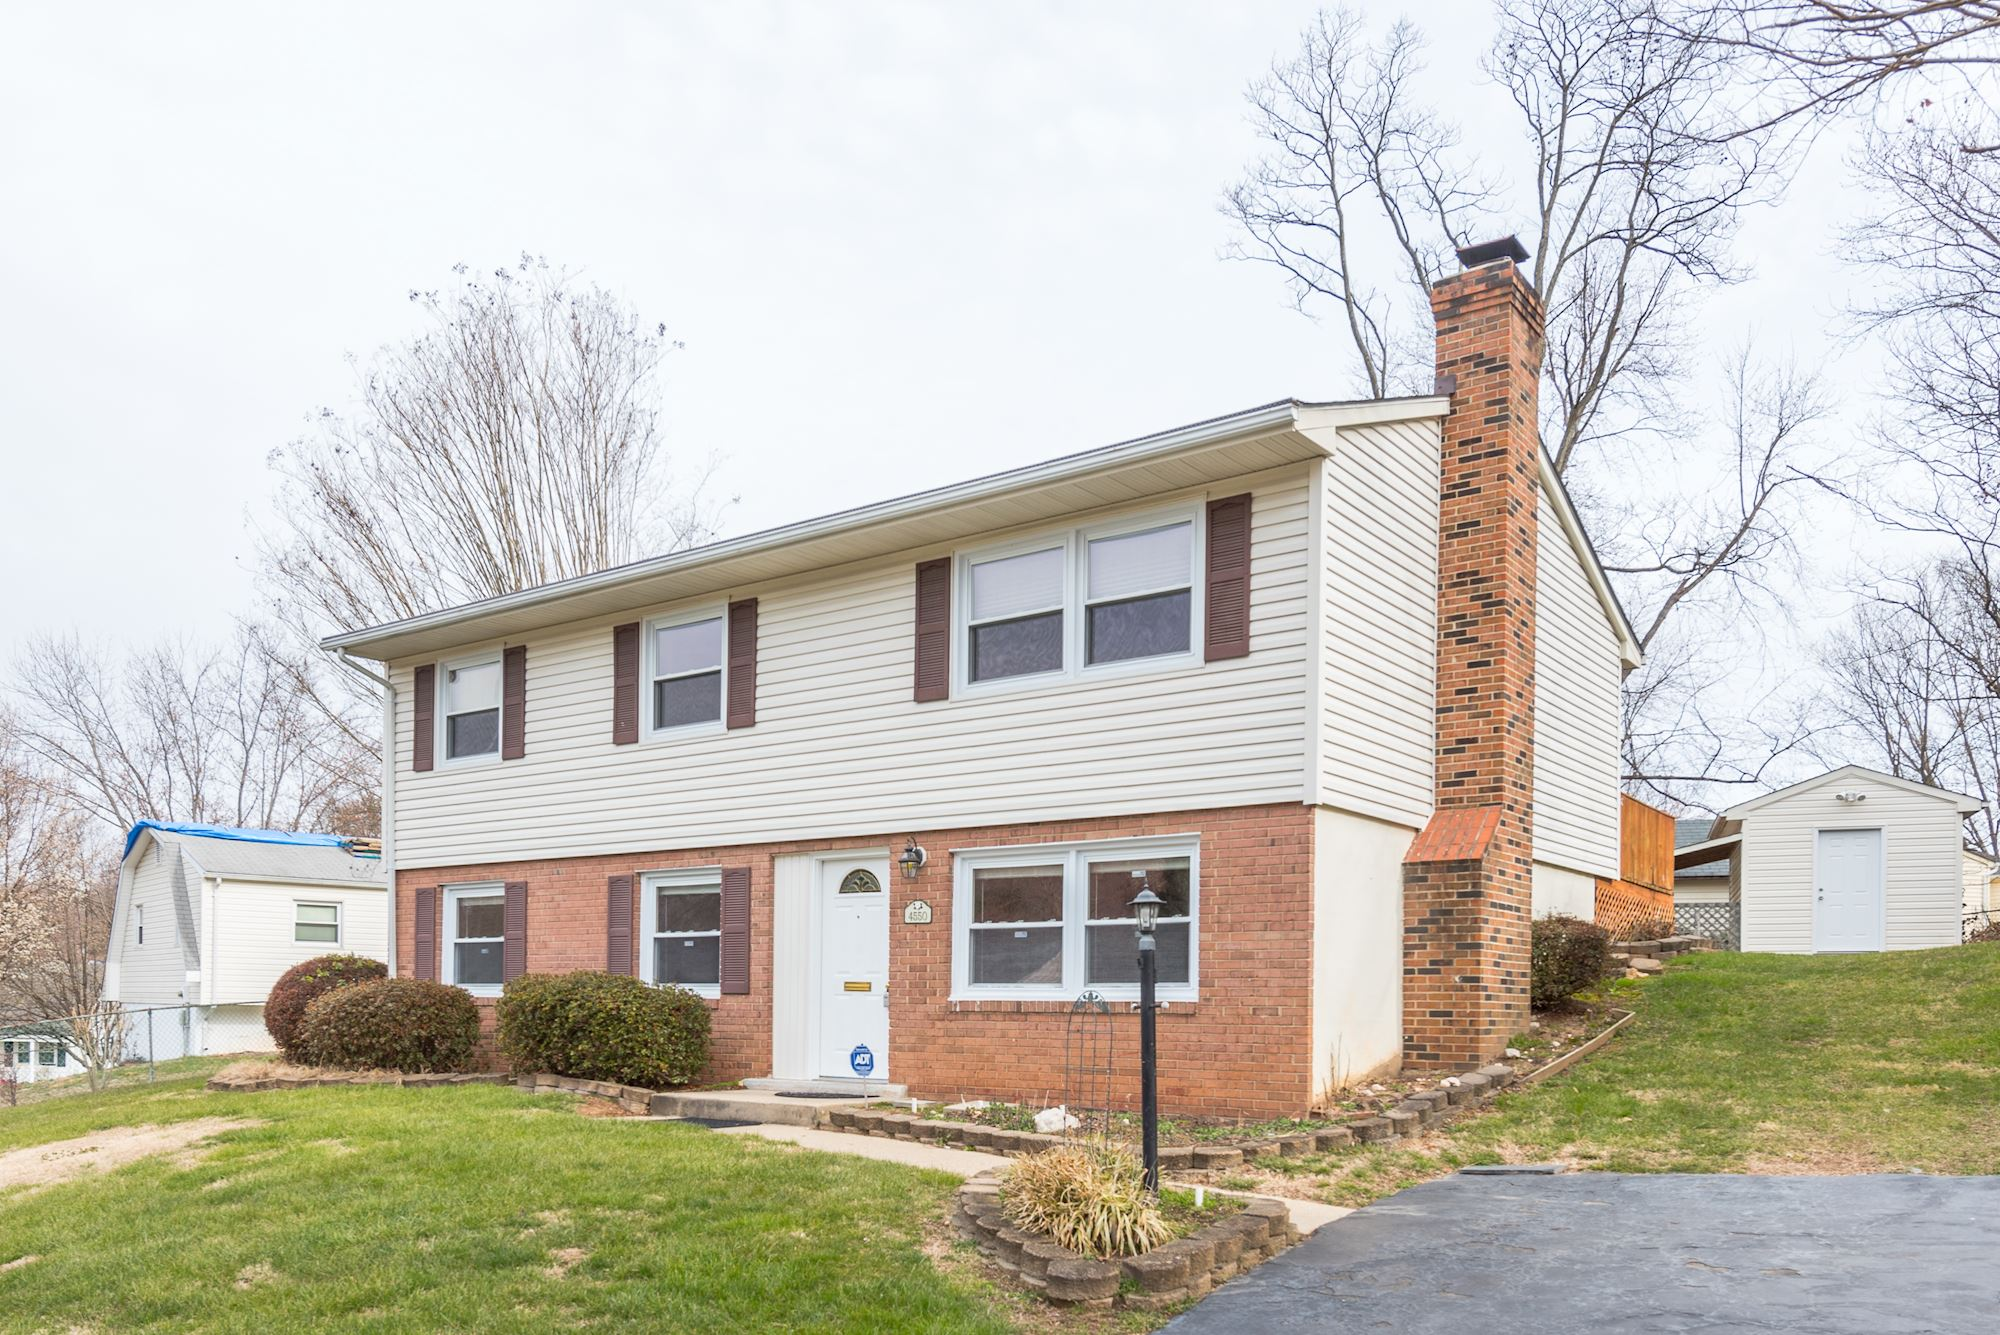 SOLD: 4 BDR Home In Woodbridge, VA